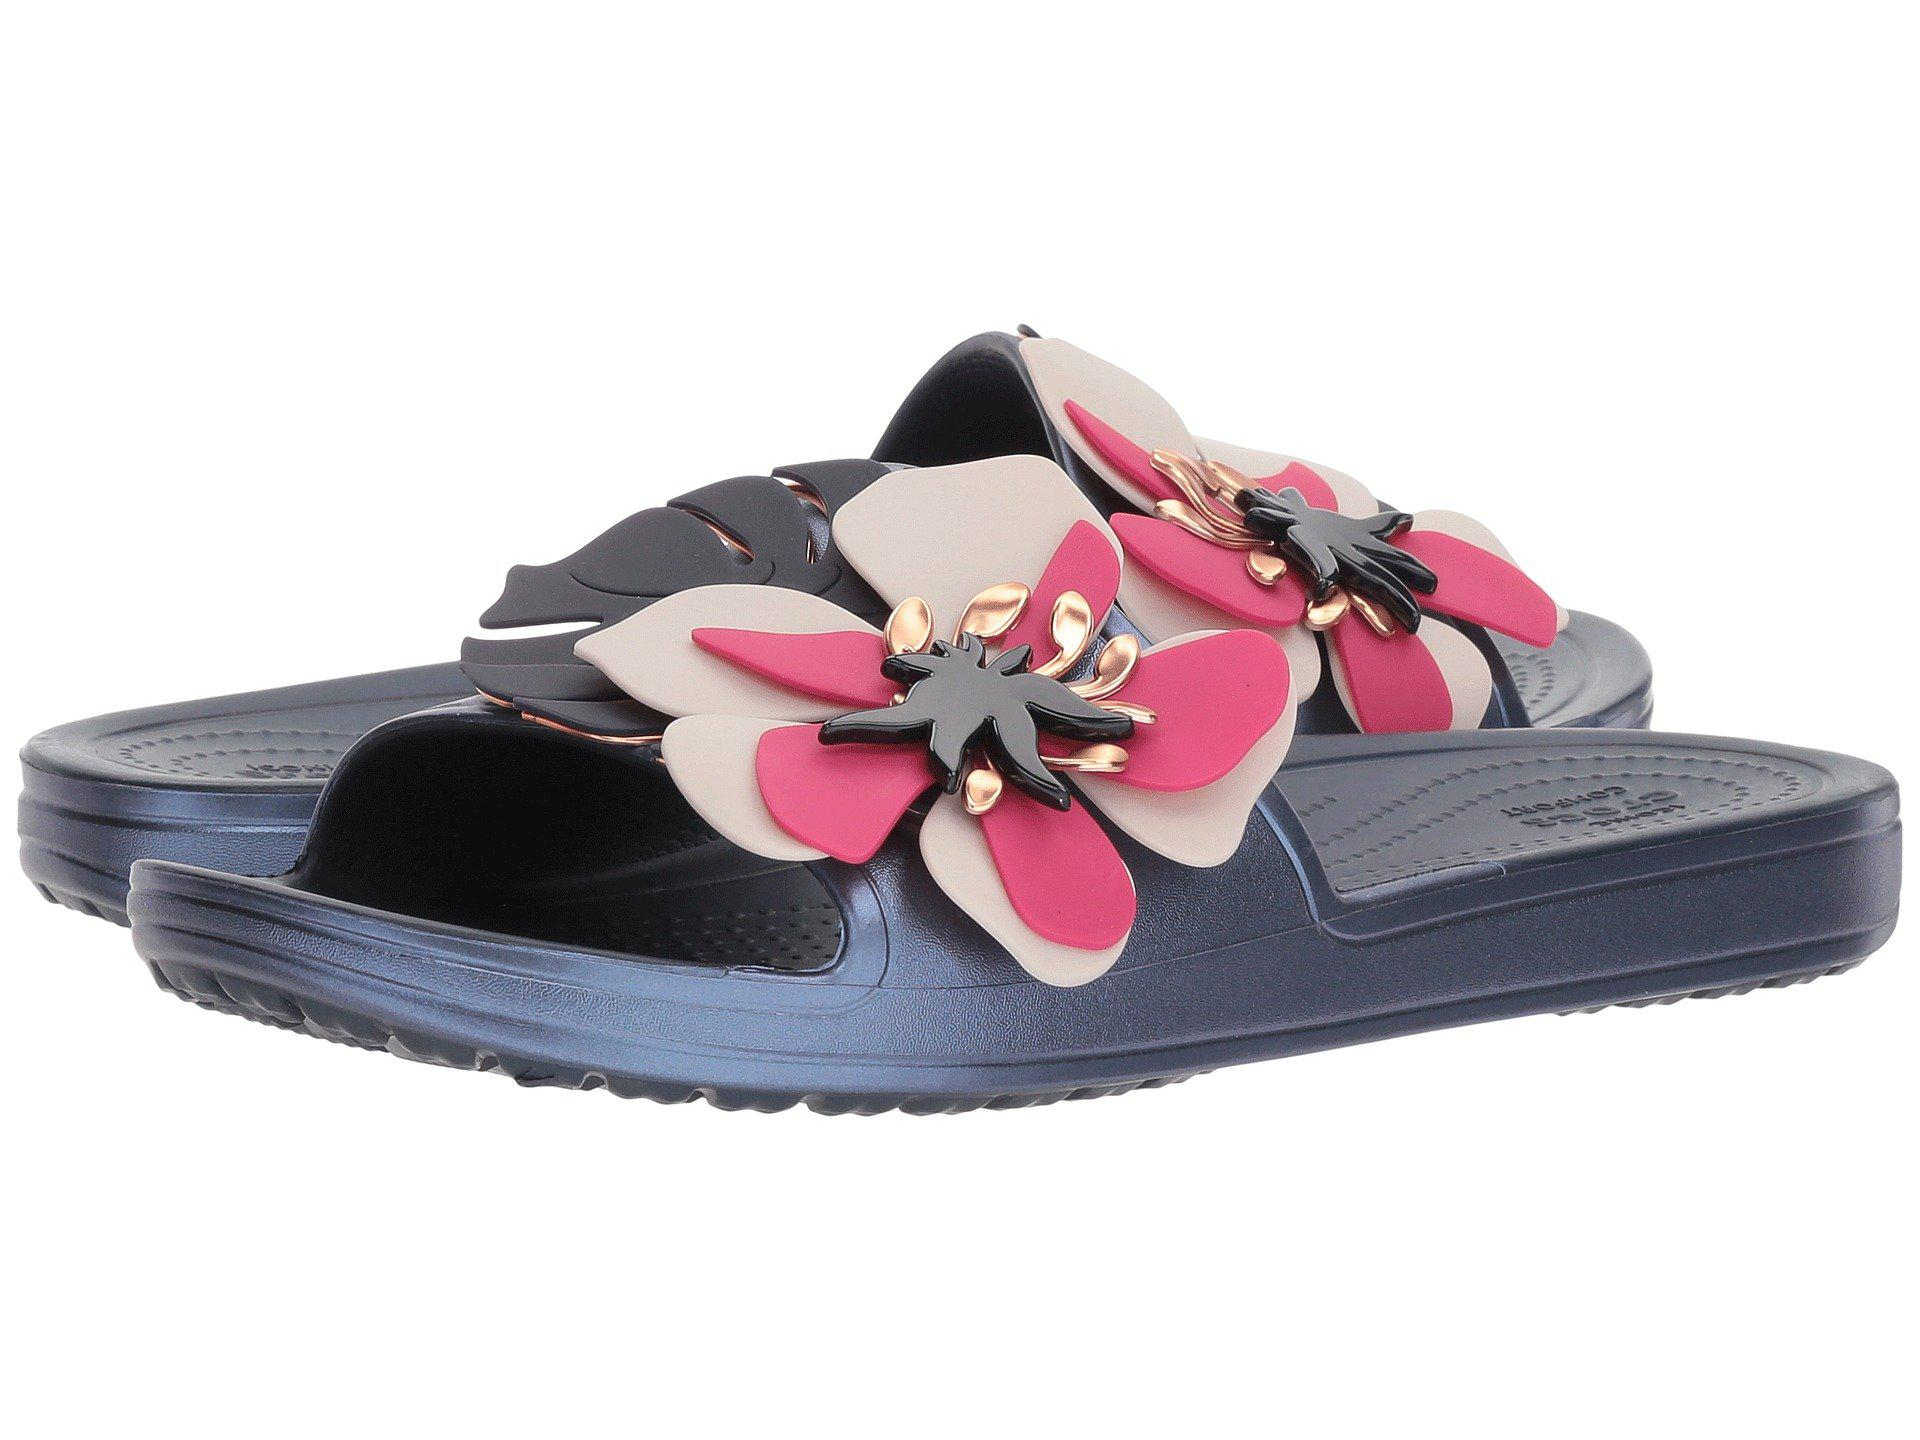 c340bec0a6f Lyst - Crocs™ Sloane Botanical Floral Slide in Blue - Save 45%